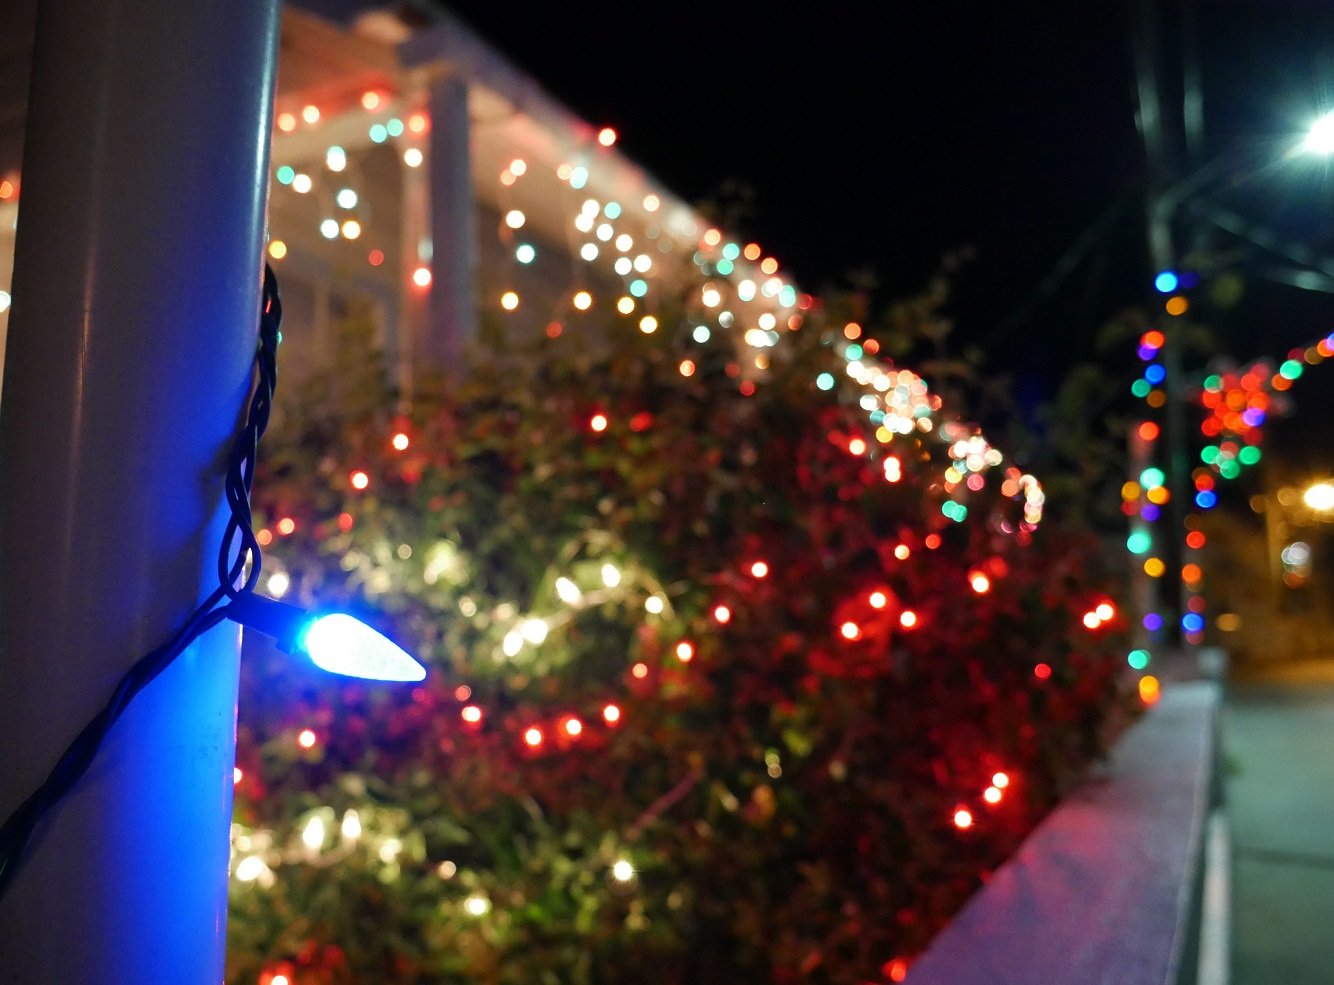 New Plymouth house decorated for Festival of Lights - Green Turtle Cay. www.littlehousebytheferry.com